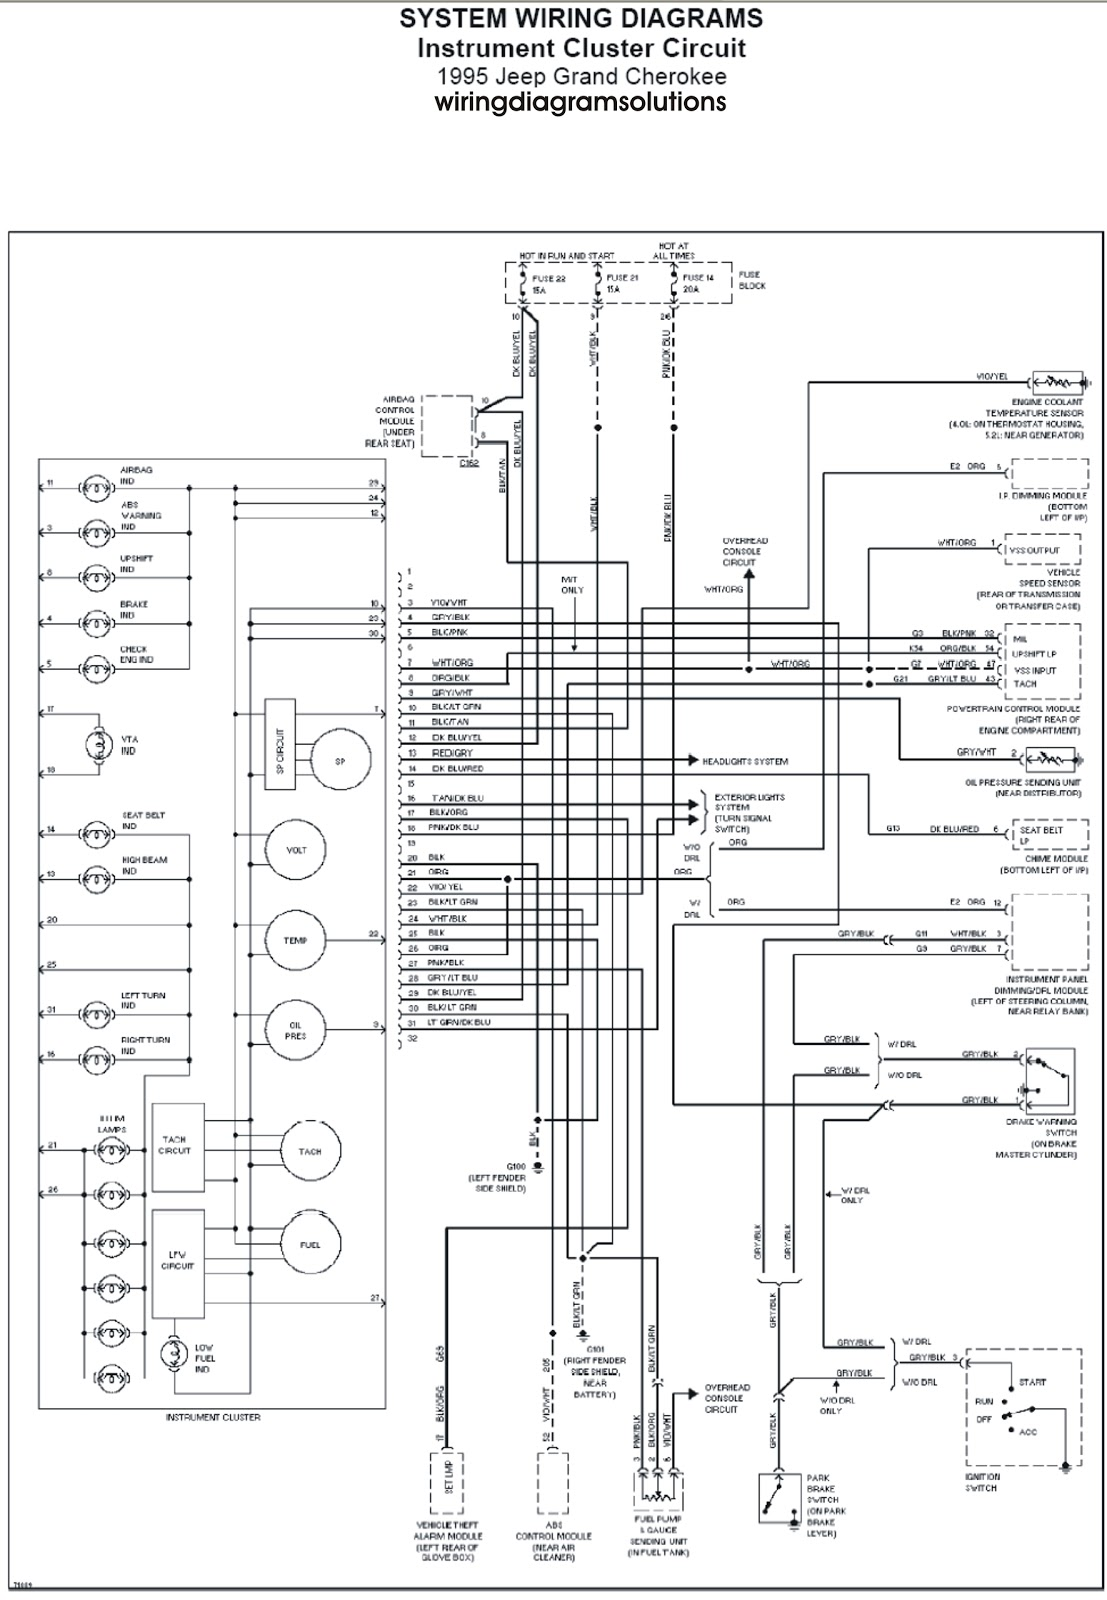 DIAGRAM] 2002 Grand Cherokee Wiring Diagram FULL Version HD Quality Wiring  Diagram - ENDIAGRAM.HOMMEVETEMENTS.FRendiagram.hommevetements.fr